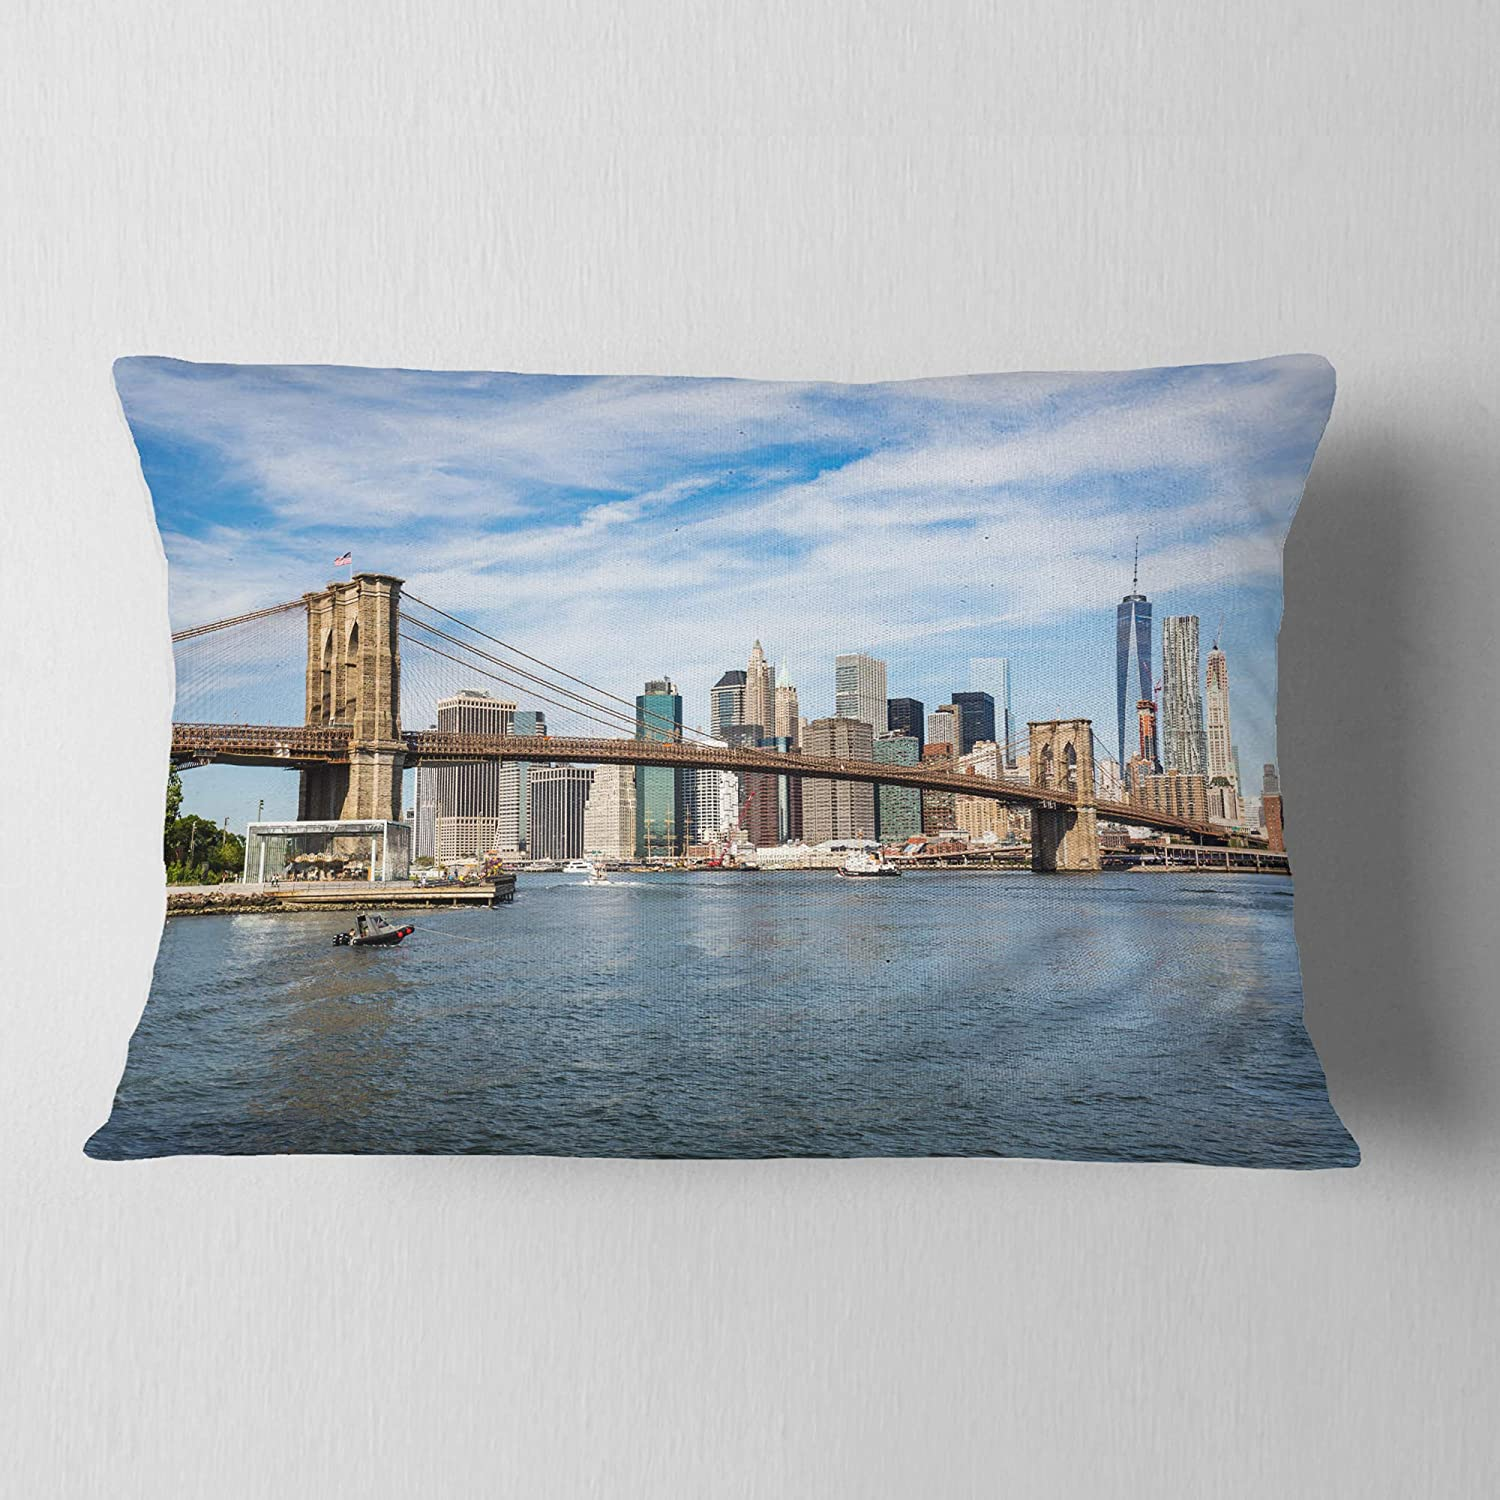 Insert Printed On Both Side x 20 in in Sofa Throw Pillow 12 in Designart CU9876-12-20 Summer Day Brooklyn Bridge Cityscape Lumbar Cushion Cover for Living Room